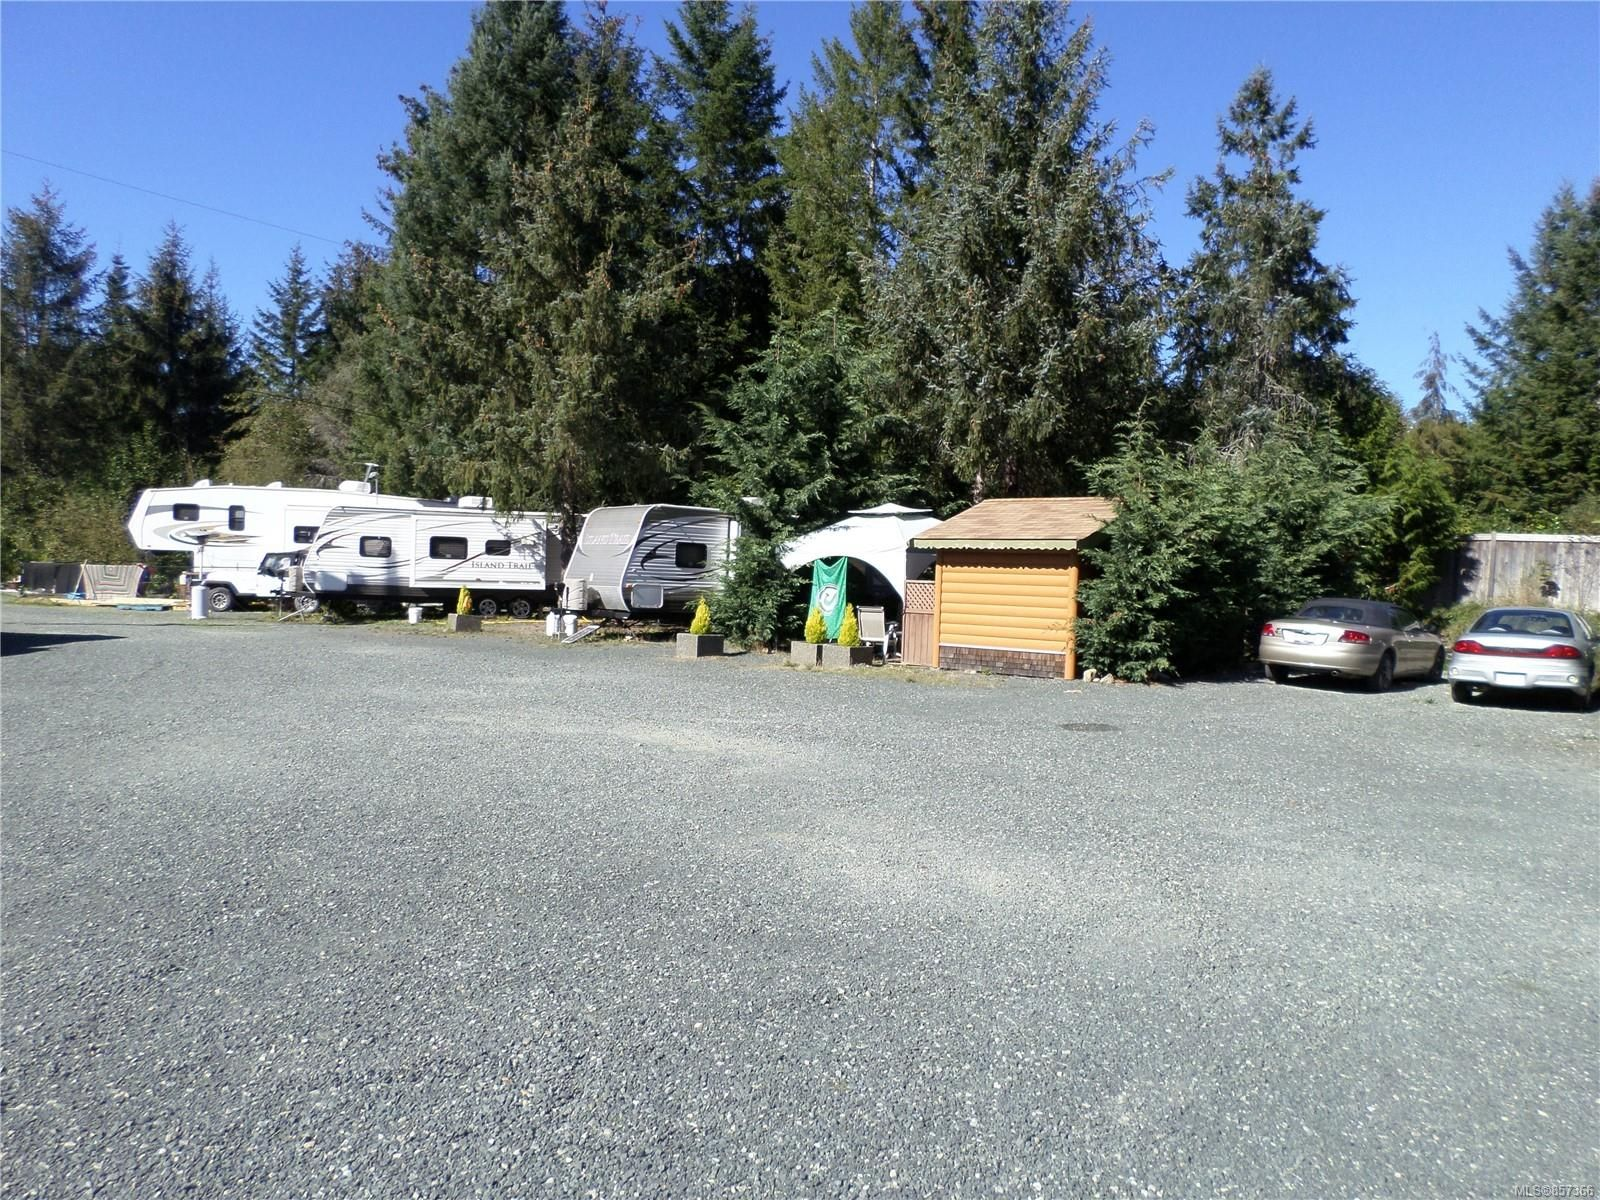 Photo 9: Photos: 1747 Nahmint Rd in : PQ Qualicum North Mixed Use for sale (Parksville/Qualicum)  : MLS®# 857366